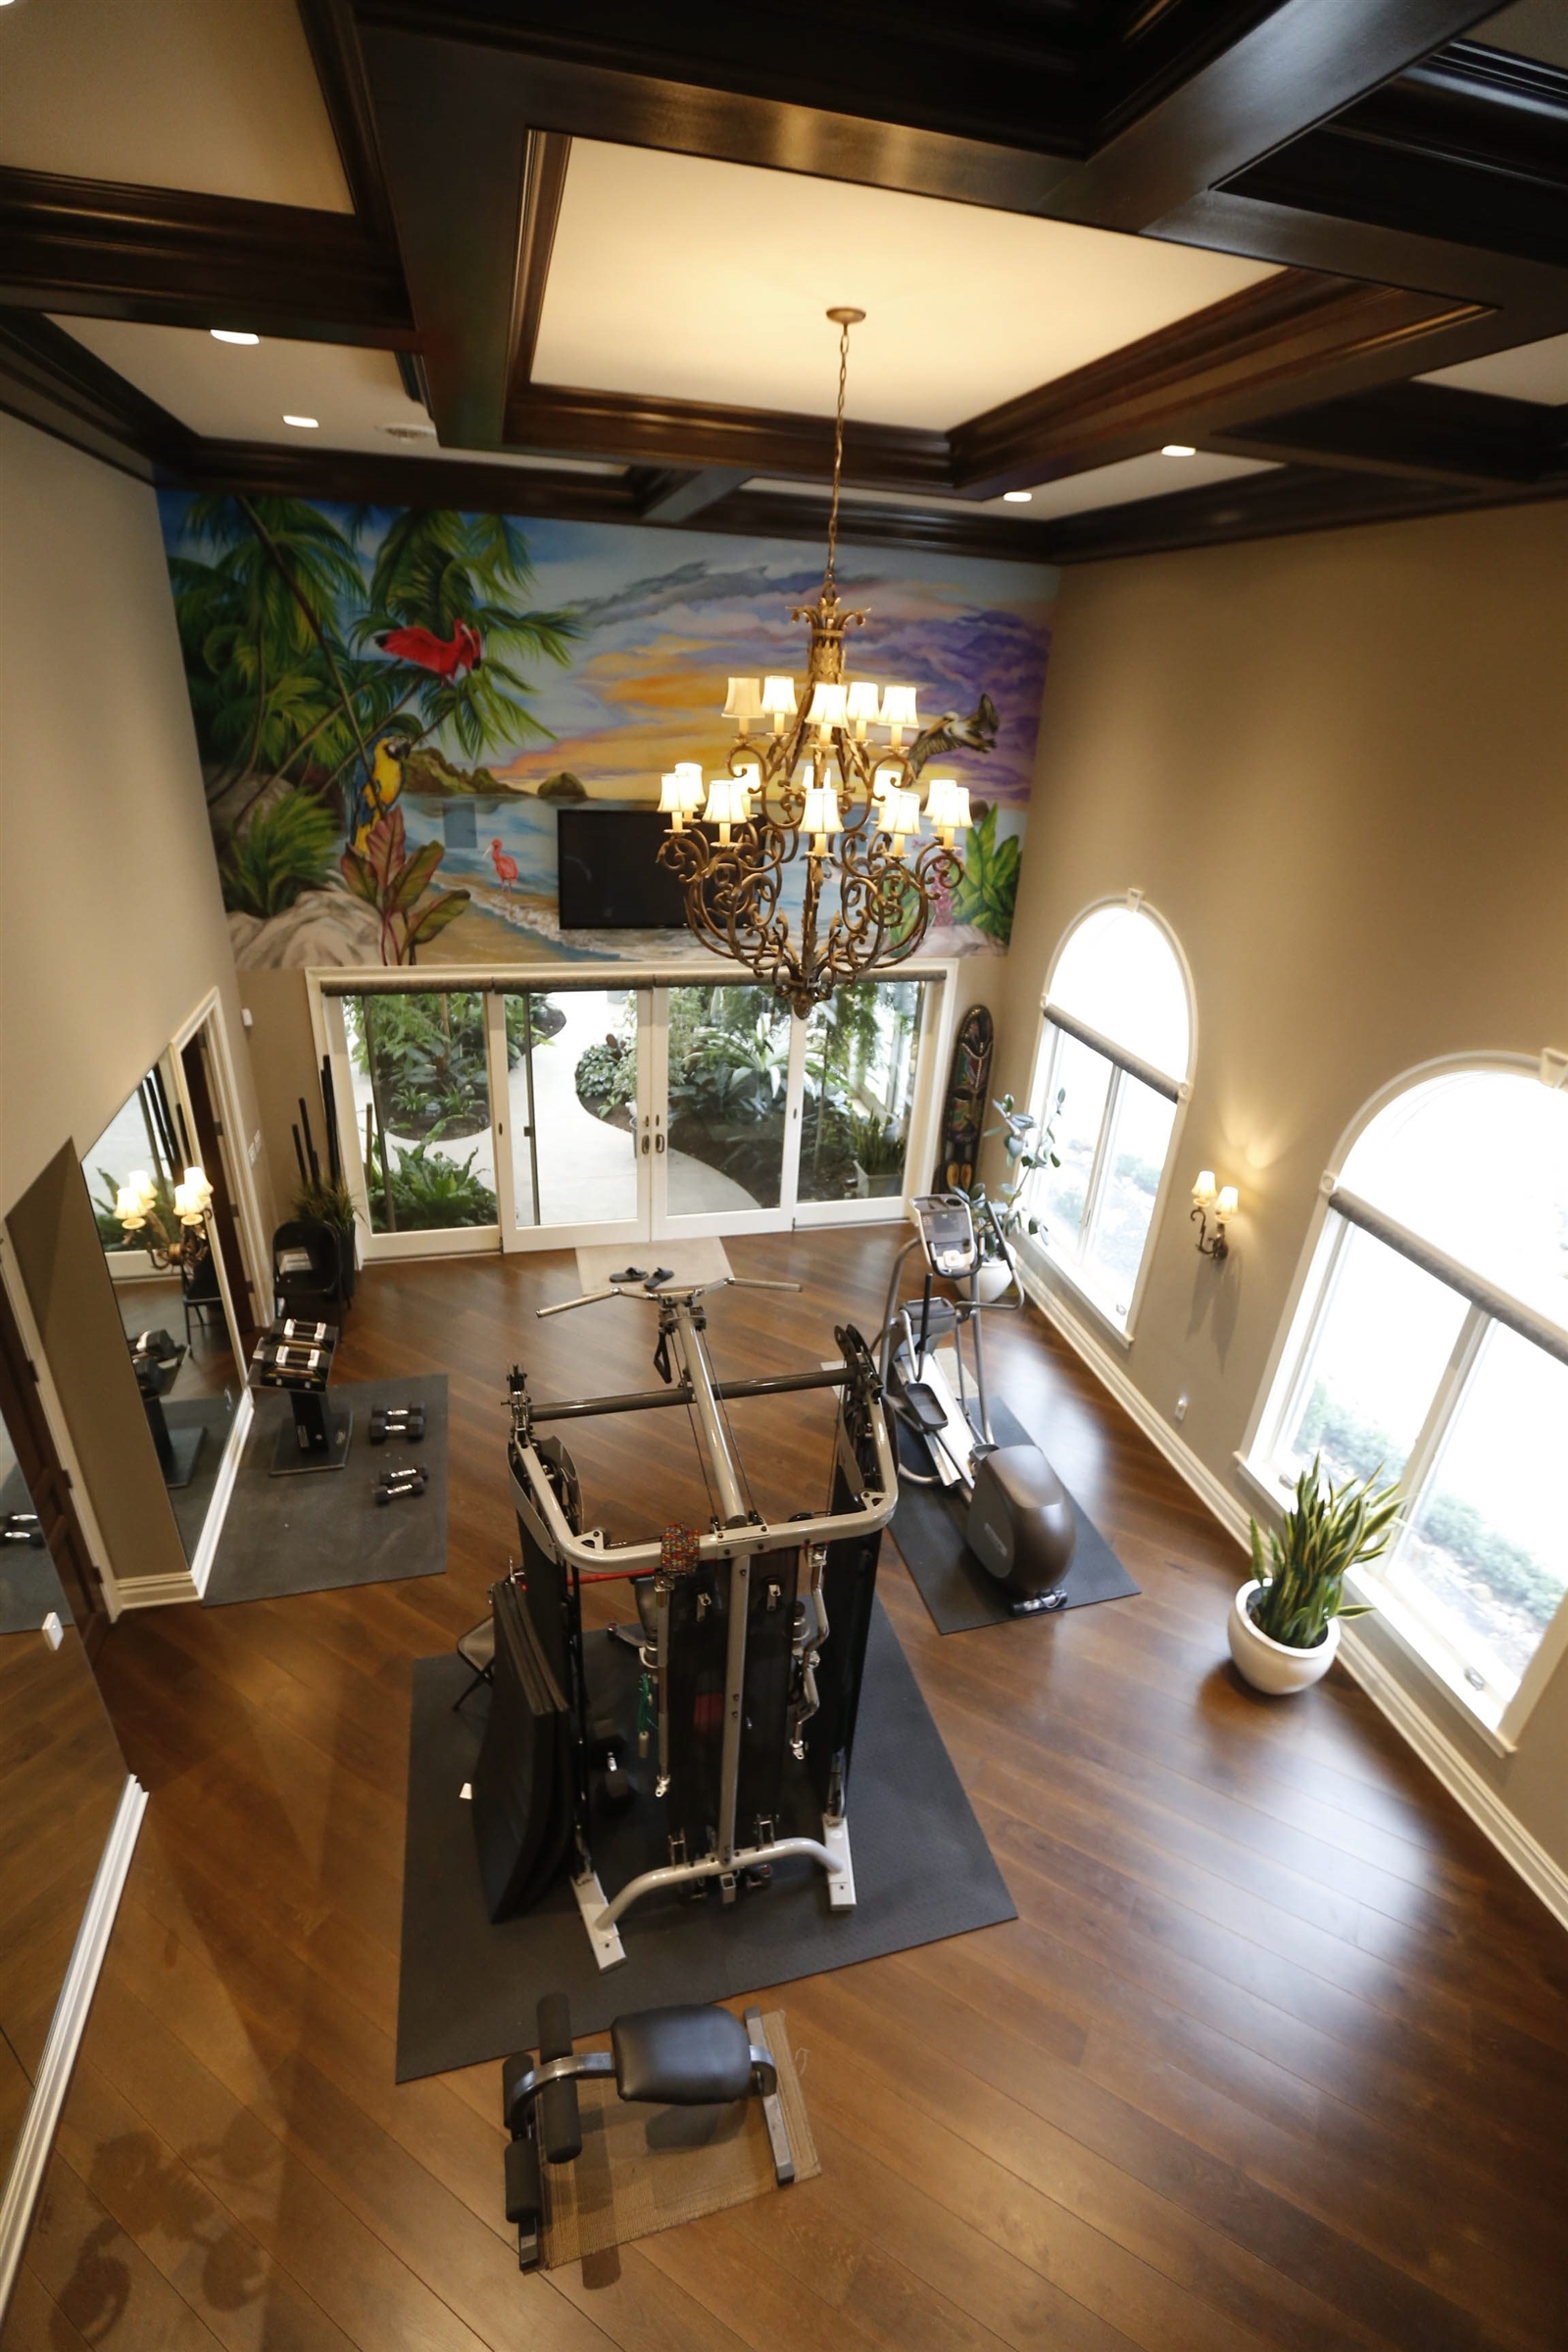 gym room with chandelier